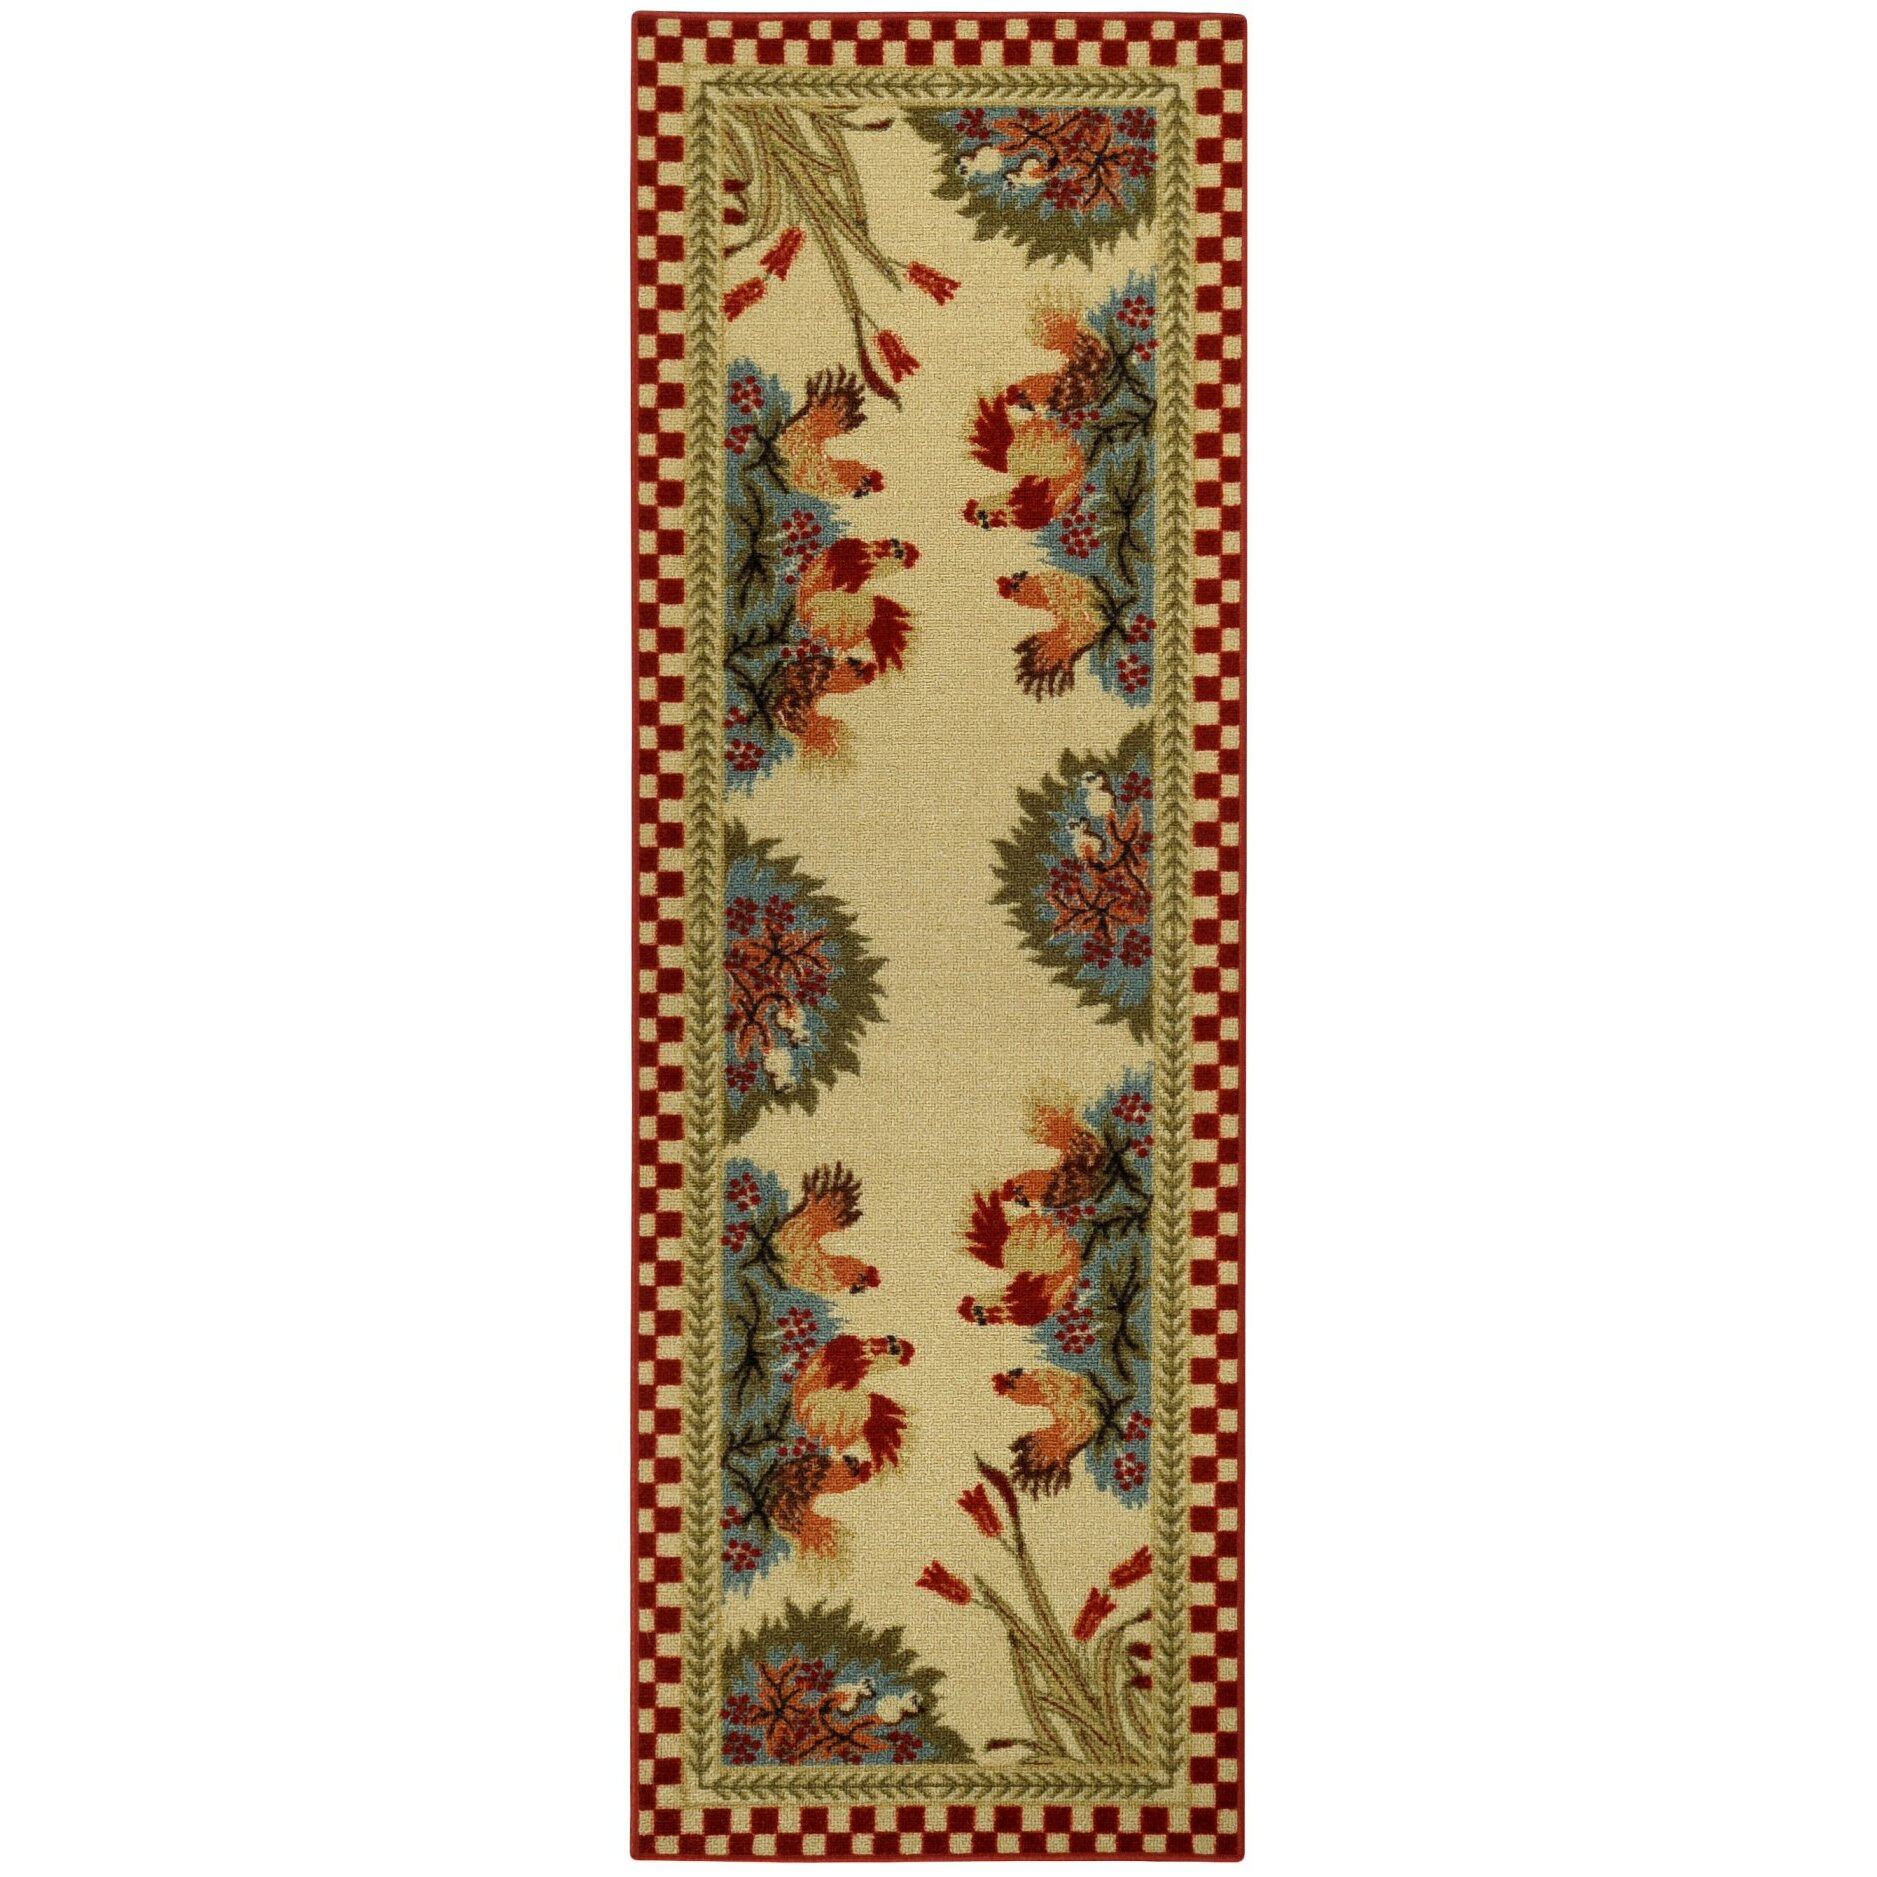 Rugnur Cucina Rooster Checkered Cream/Red Kitchen Area Rug